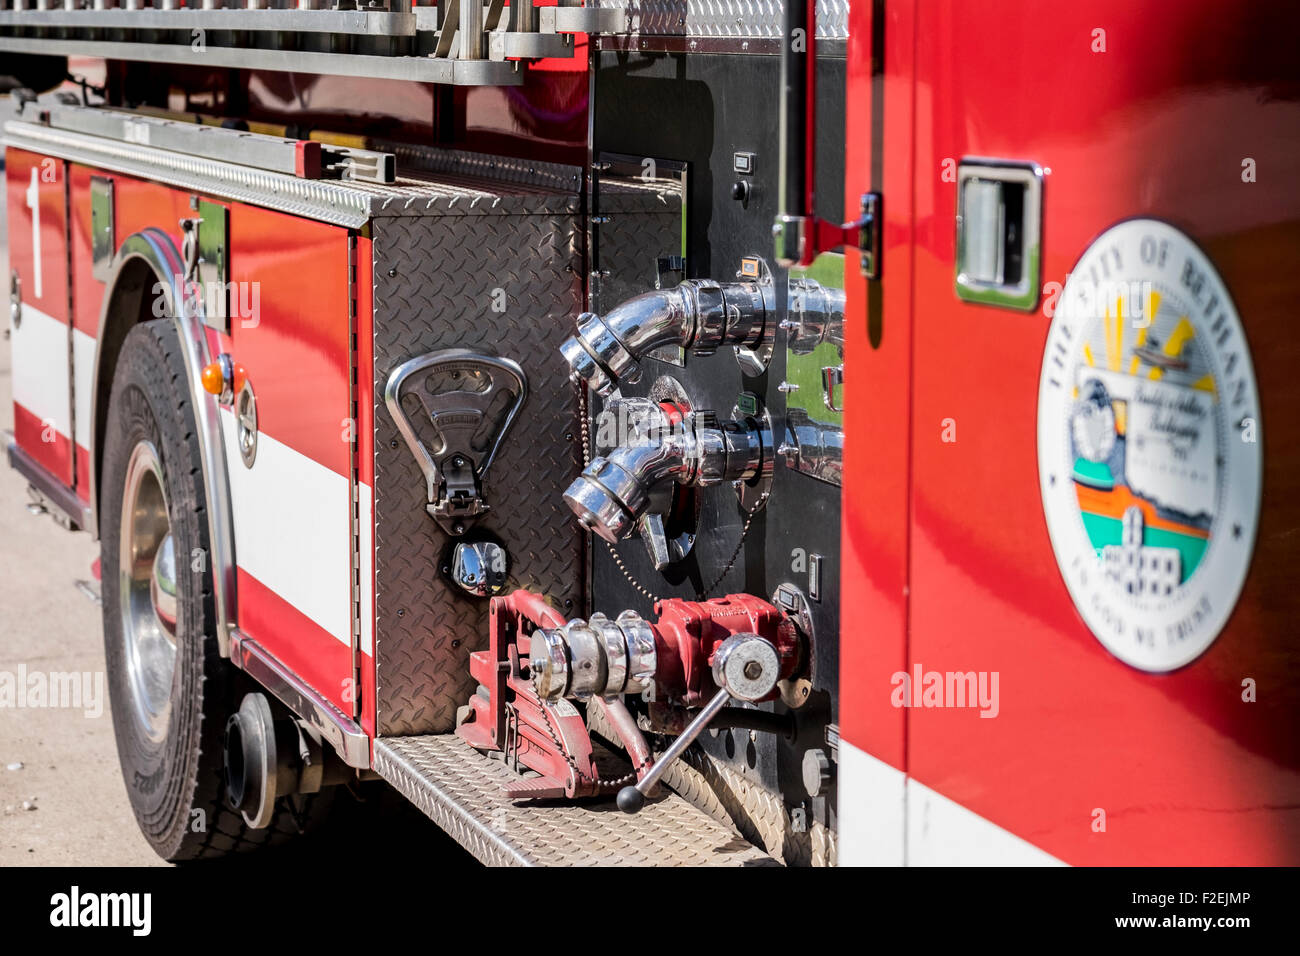 A fire engine showing part of the equipment close up in Bethany, Oklahoma. - Stock Image